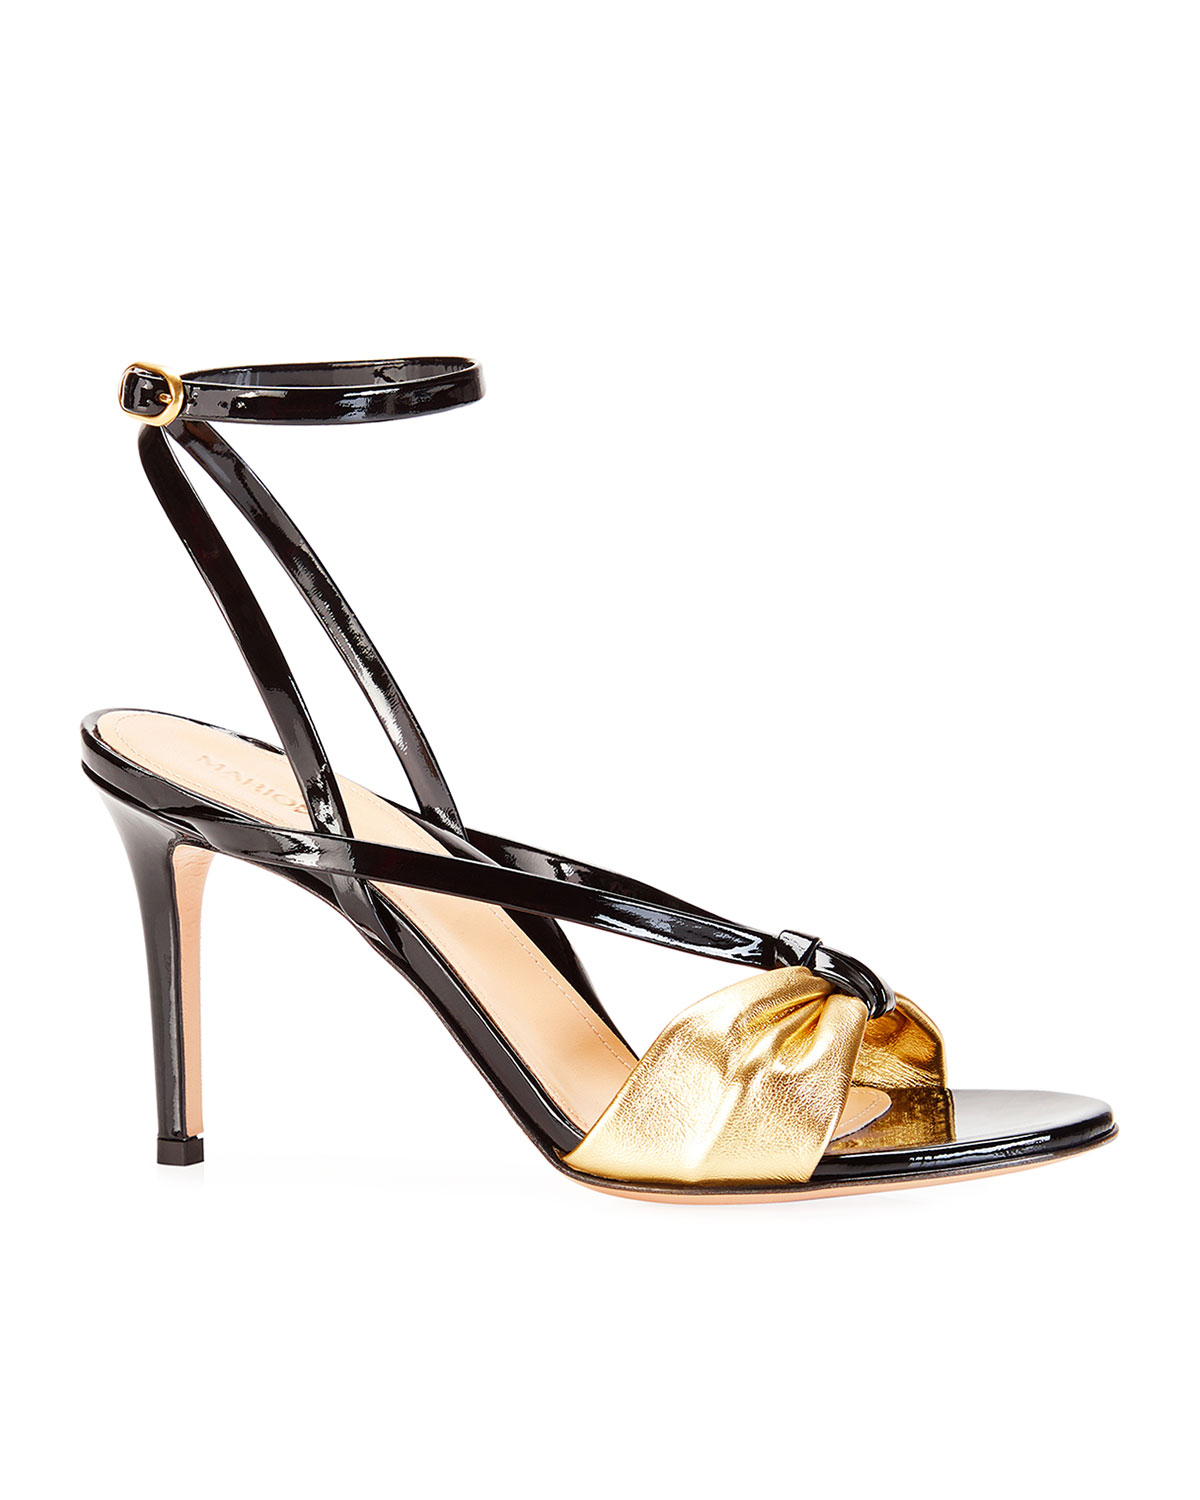 4a2756d7909d Marion Parke Lucy Strappy Metallic Sandals